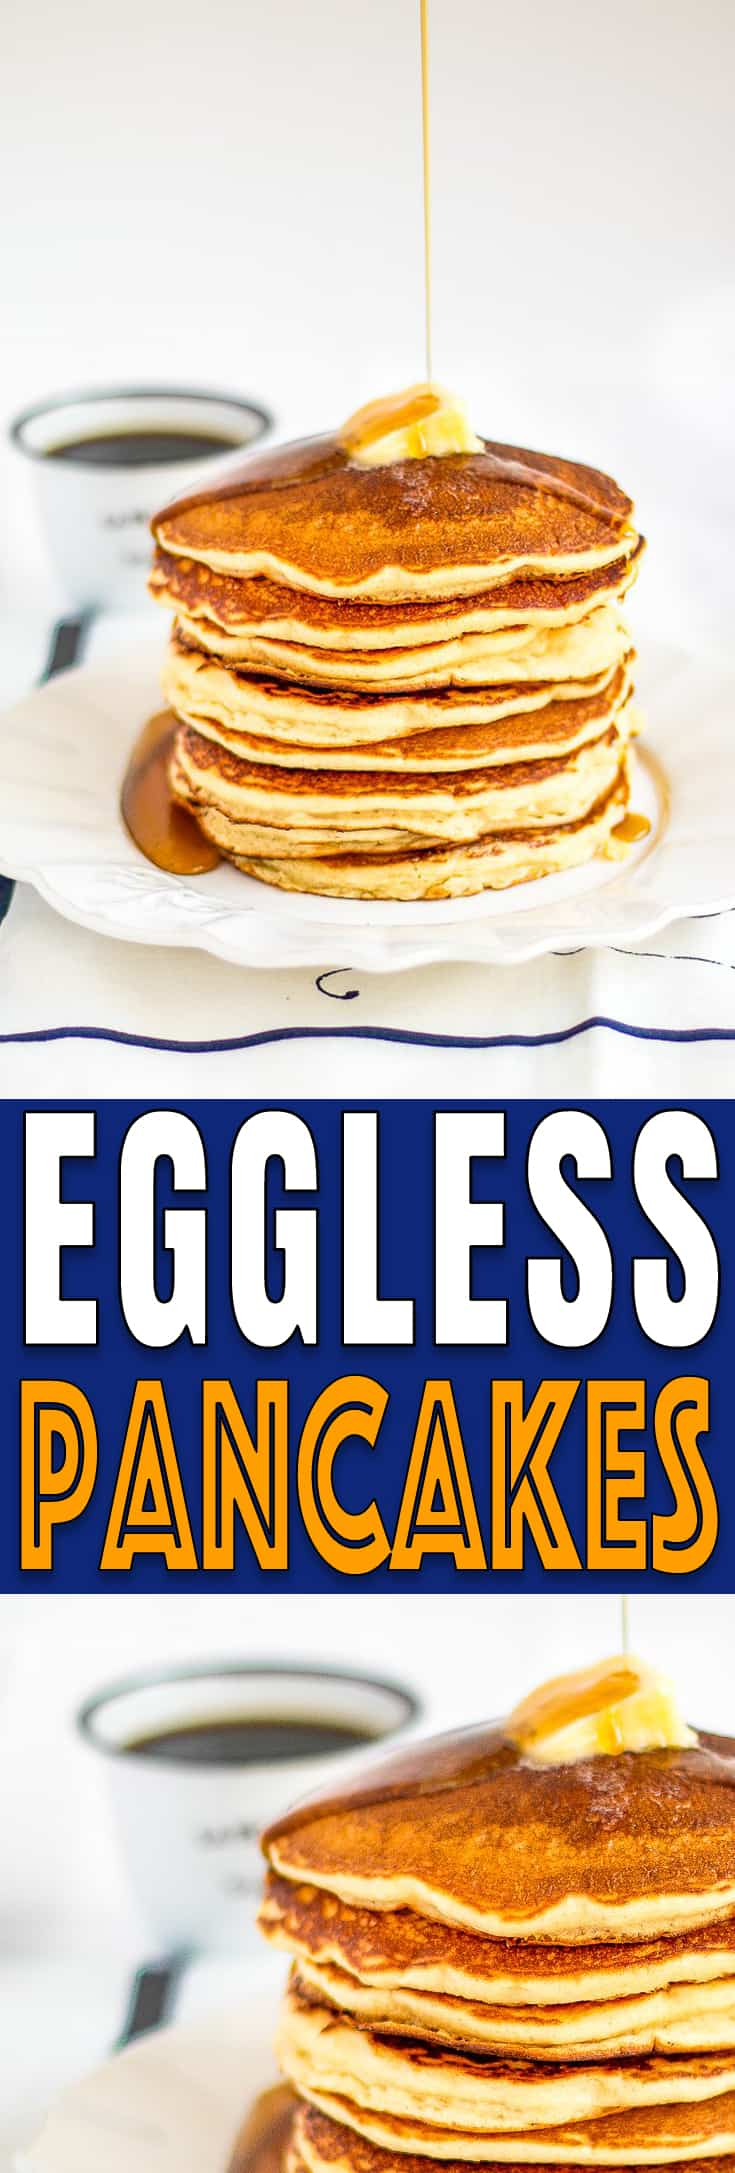 This eggless pancakes really do taste like the real thing! Fluffy, easy and delicious... definitely a breakfast winner! https://mommyshomecooking.com